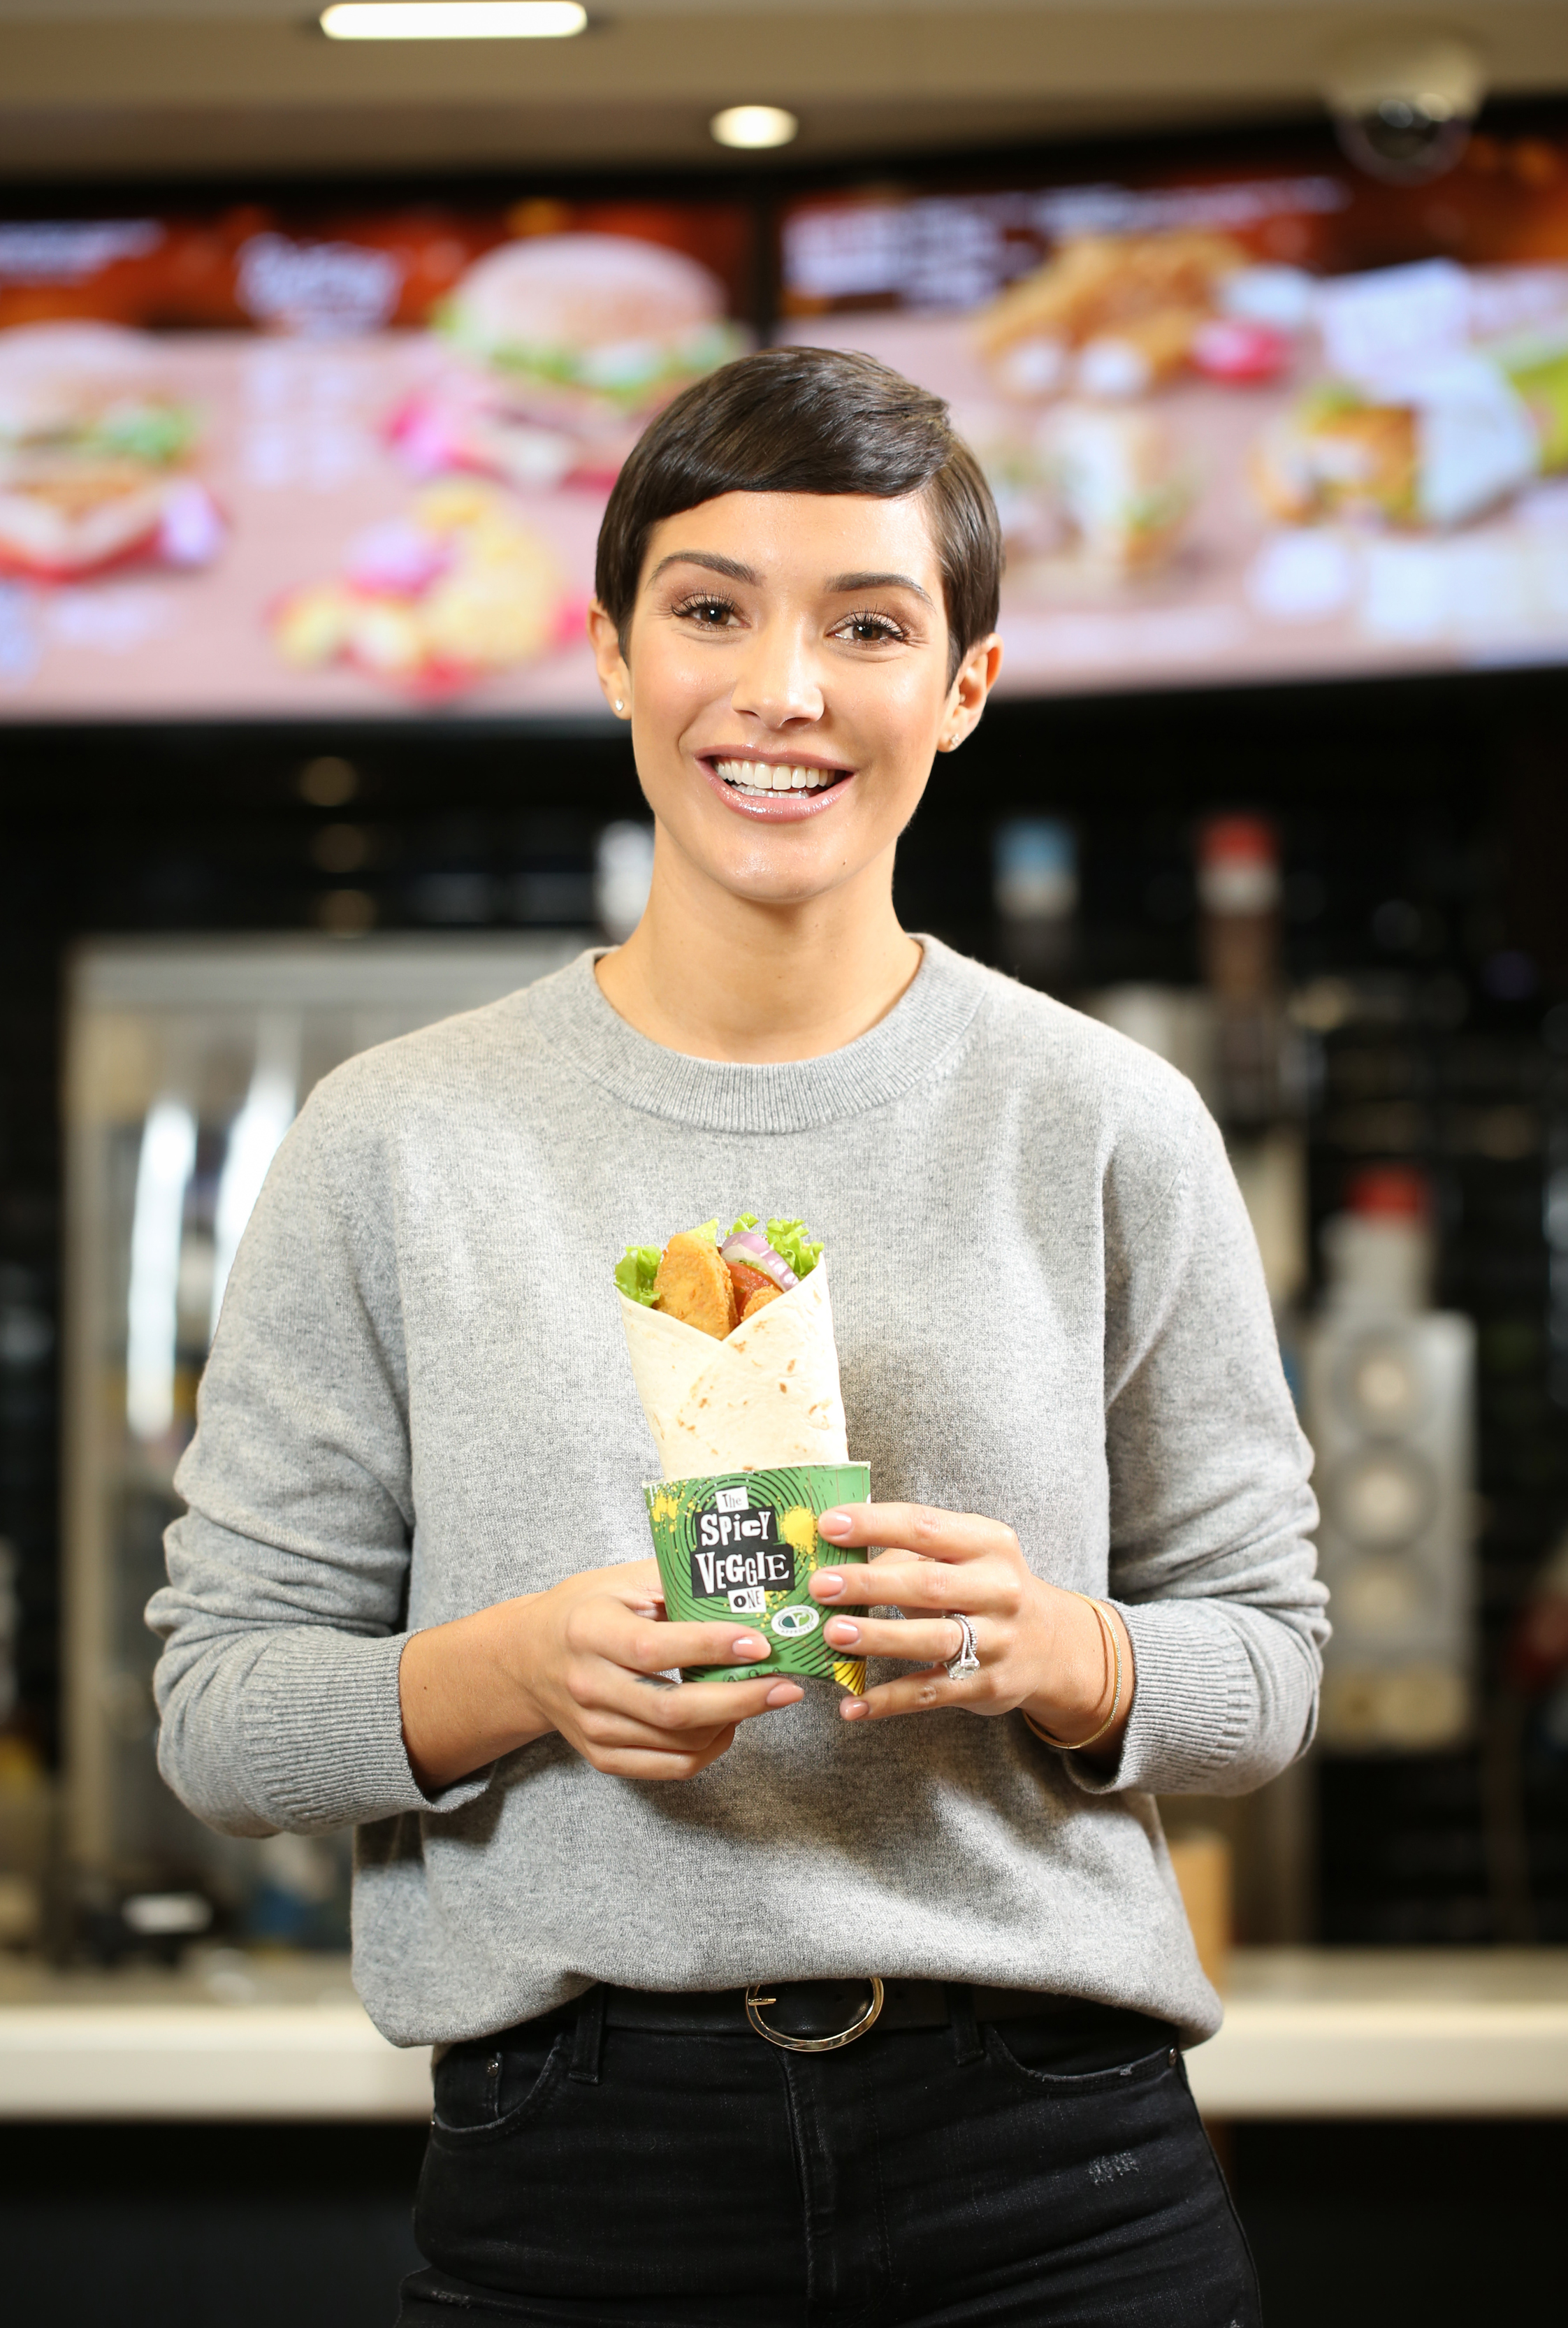 Frankie Bridge with a new Spicy Veggie Wrap on the menu at MacDonalds, as research reveals a third of McDonald's customers want to include more meat free meals into their household's diets. (Matt Alexander/PA)